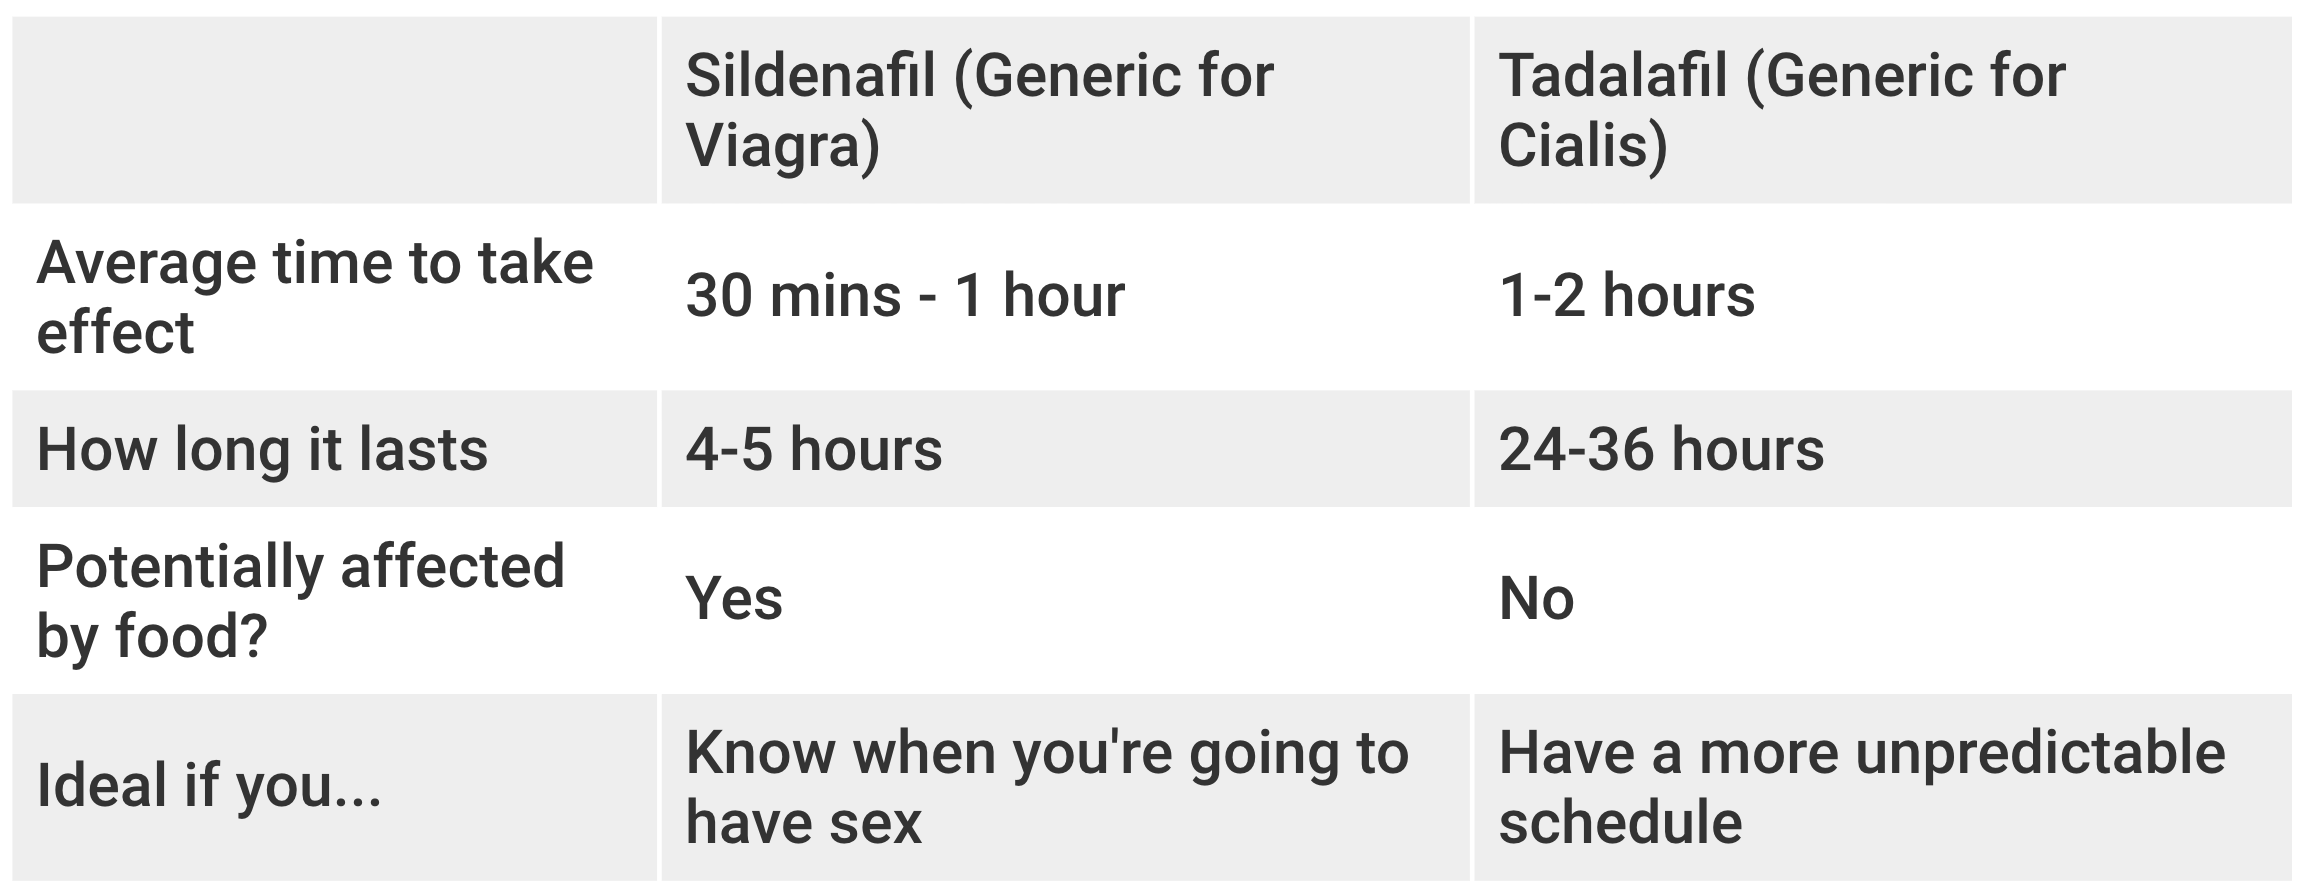 Comparison chart for Sildenafil (Viagra) vs Tadalafil (Cialis)